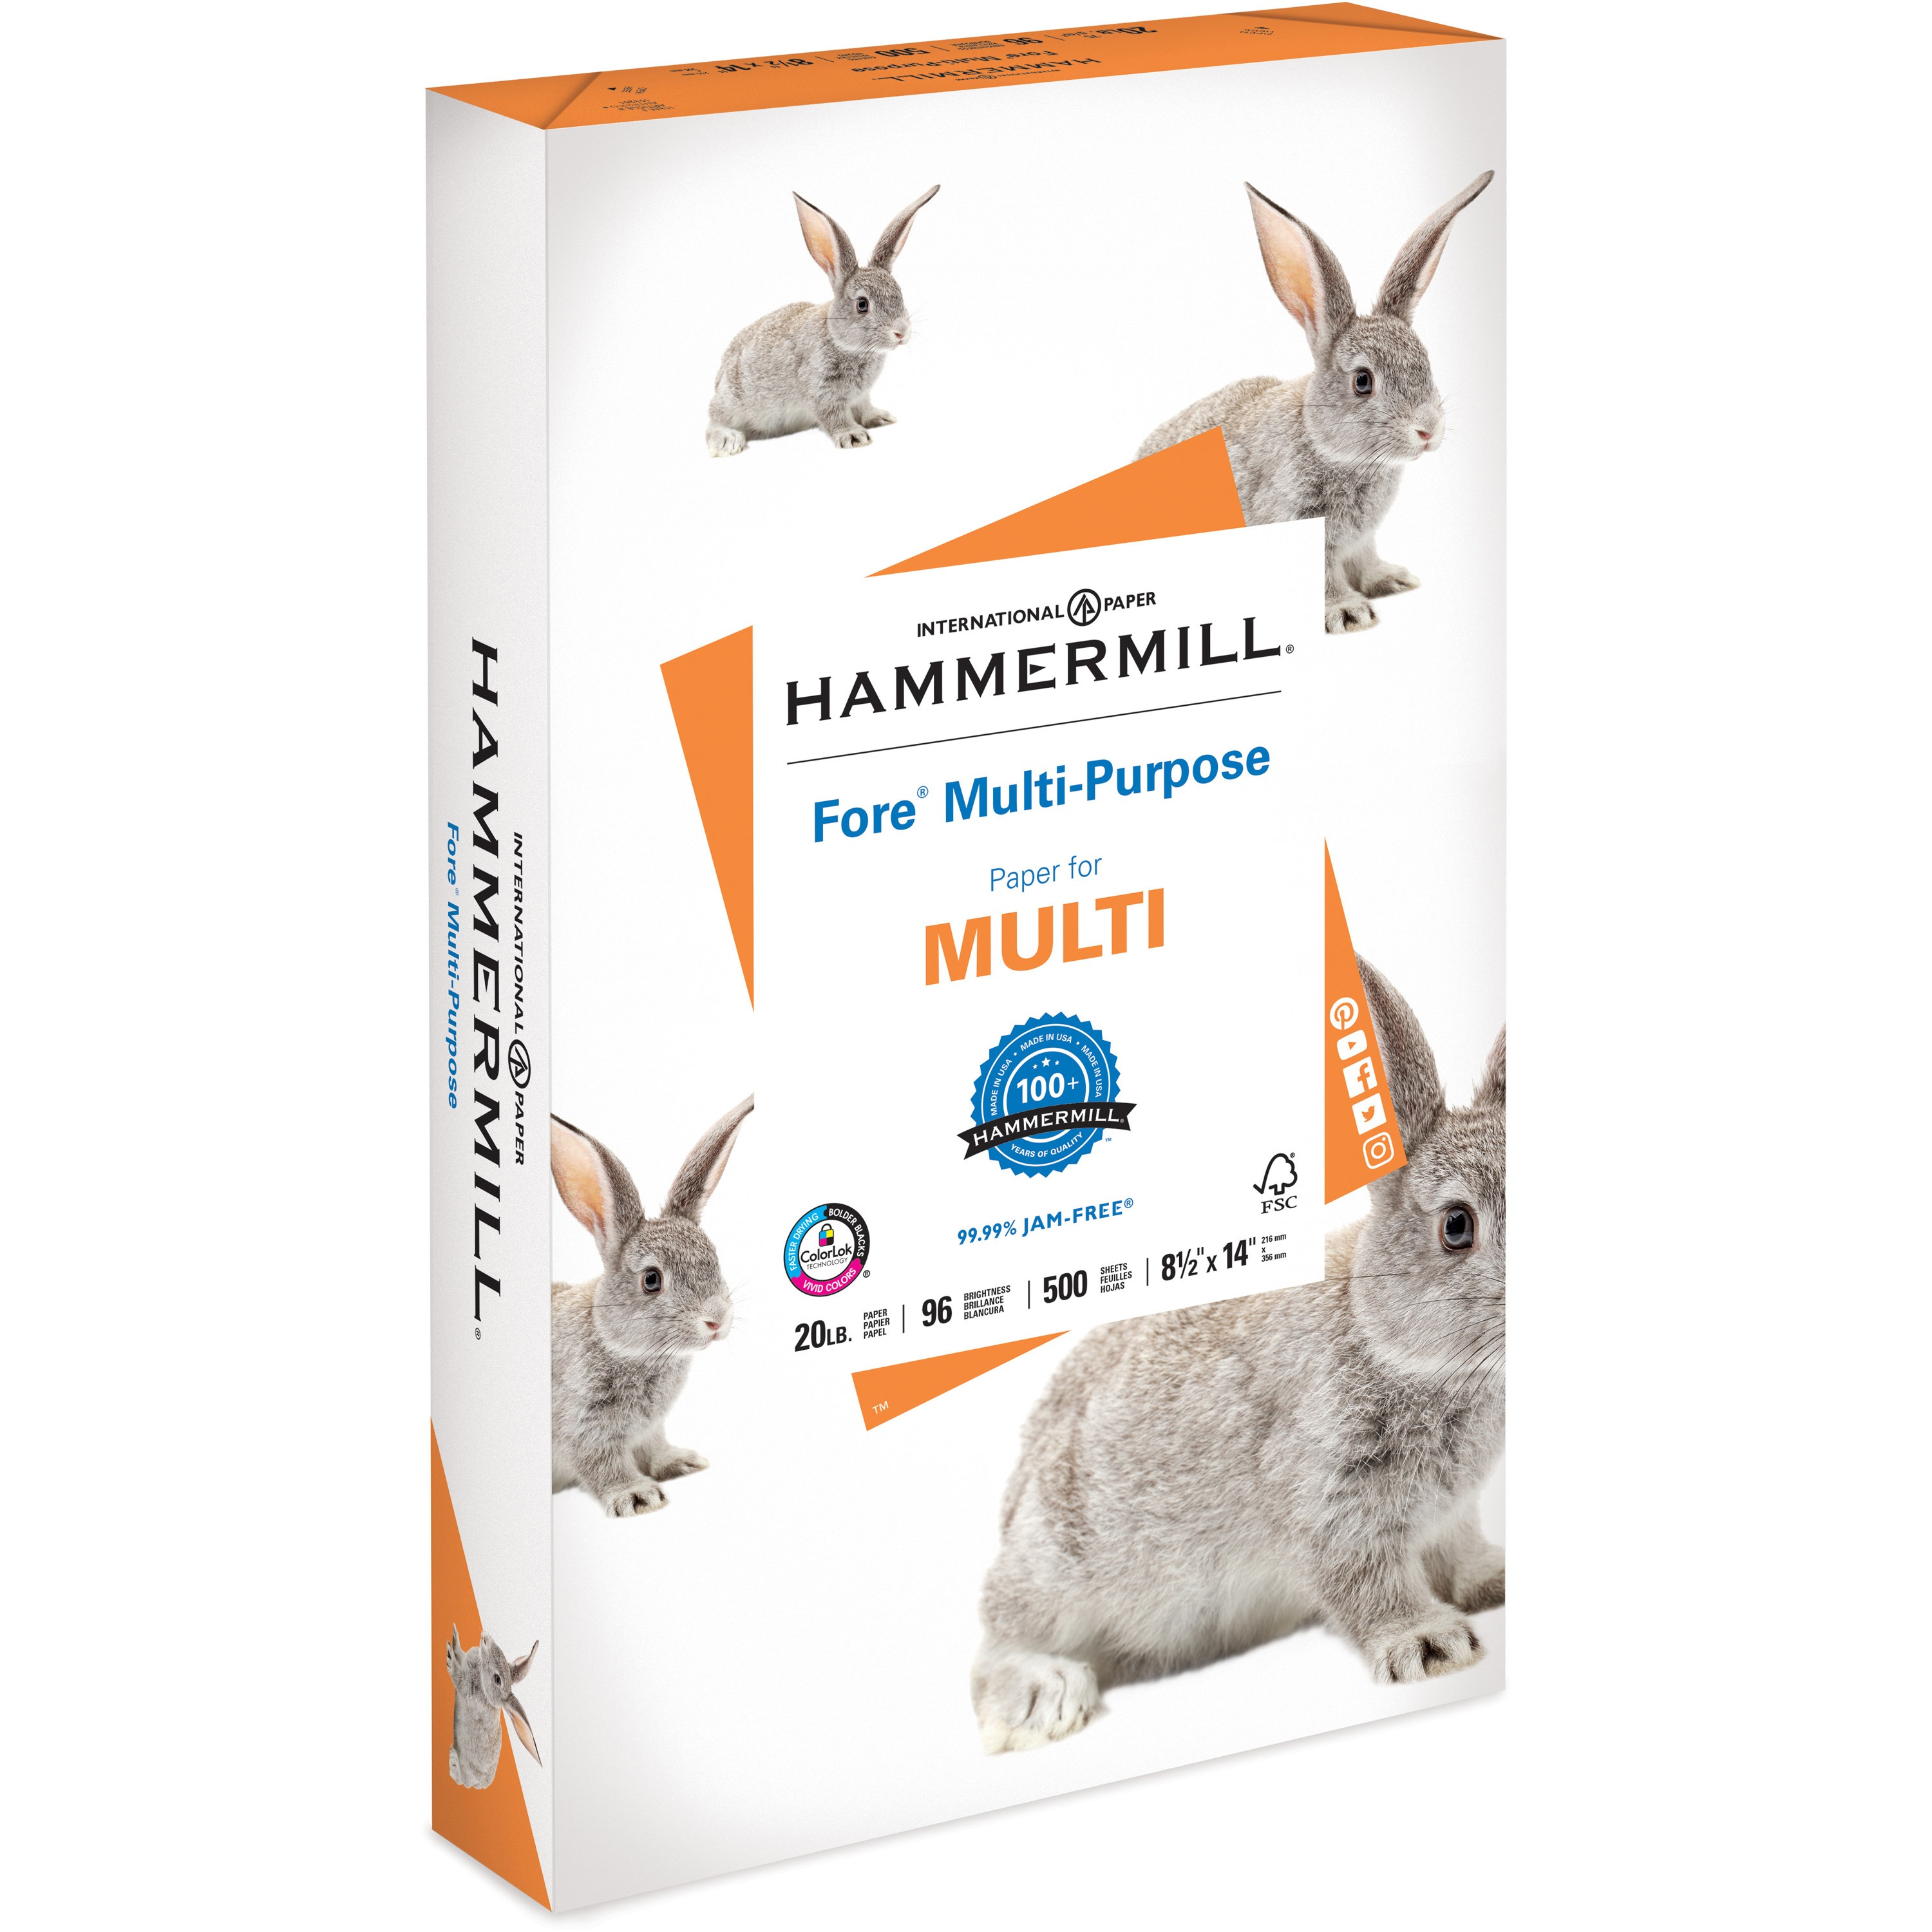 Hammermill, HAM103291, Fore MP White Paper, 500 / Ream, White